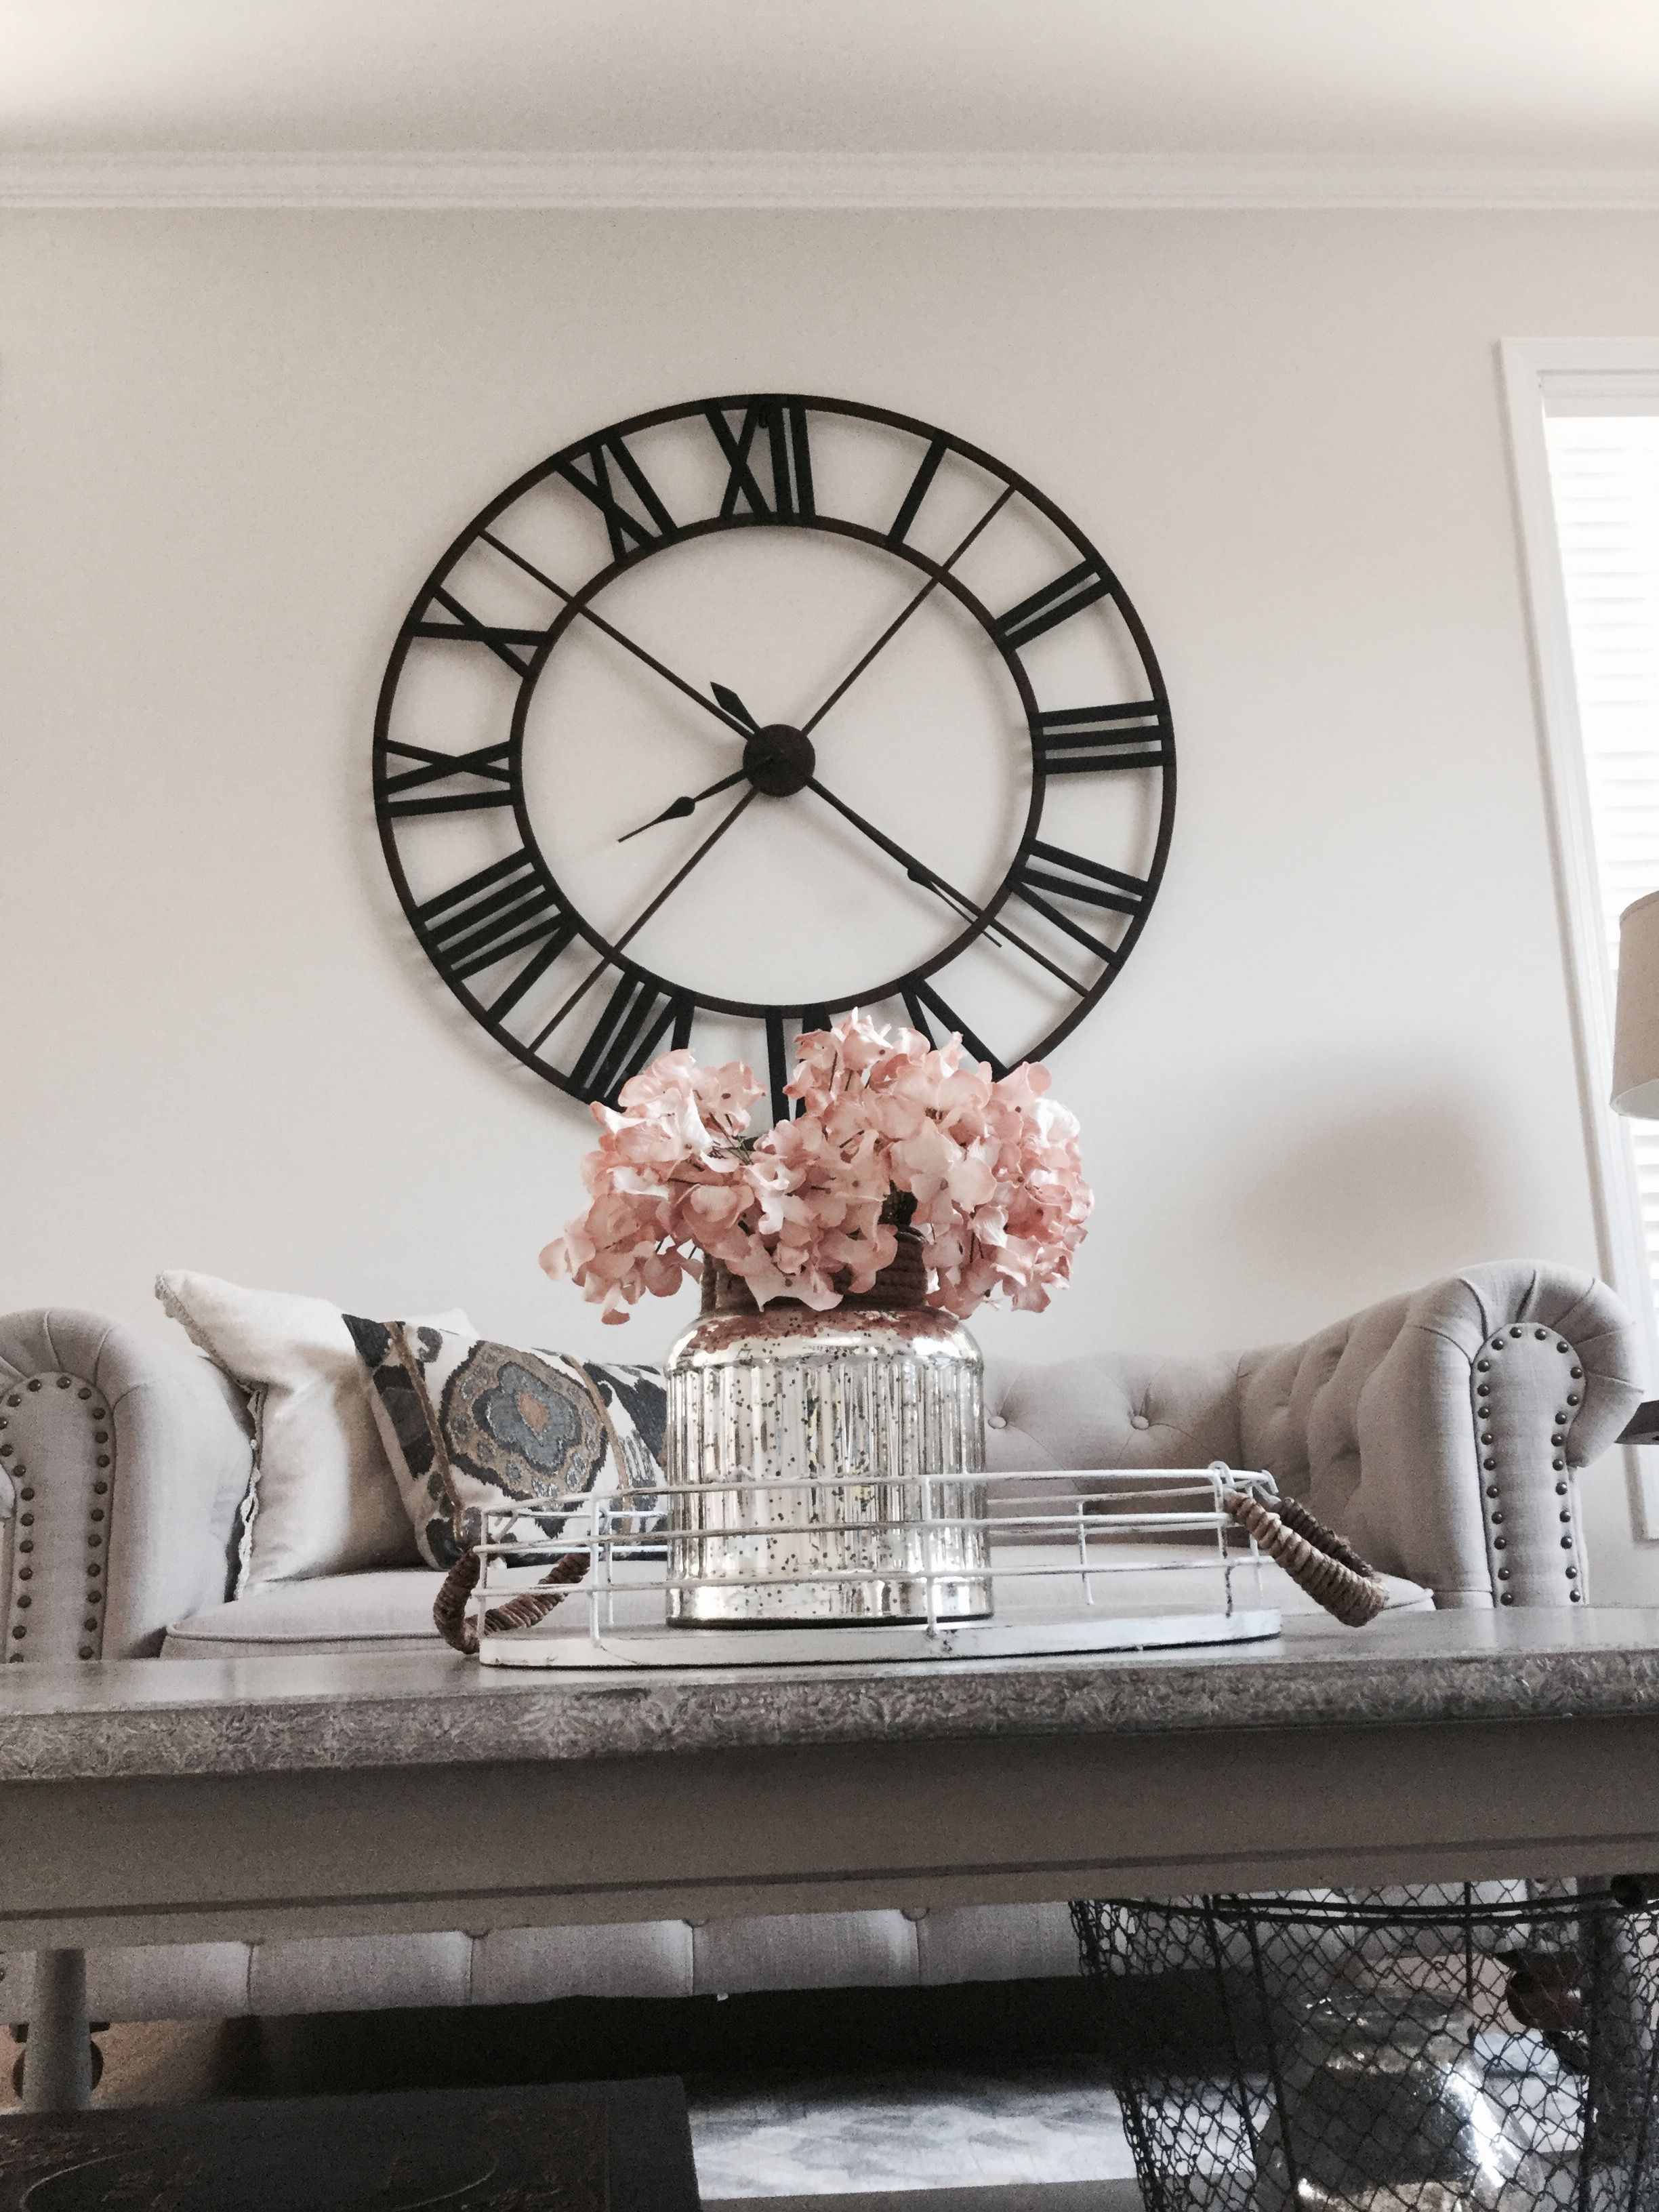 details thelilliebag com decorating ideas living room decor rustic decor meets glam oversized clock tufted sofa gray and blush decor